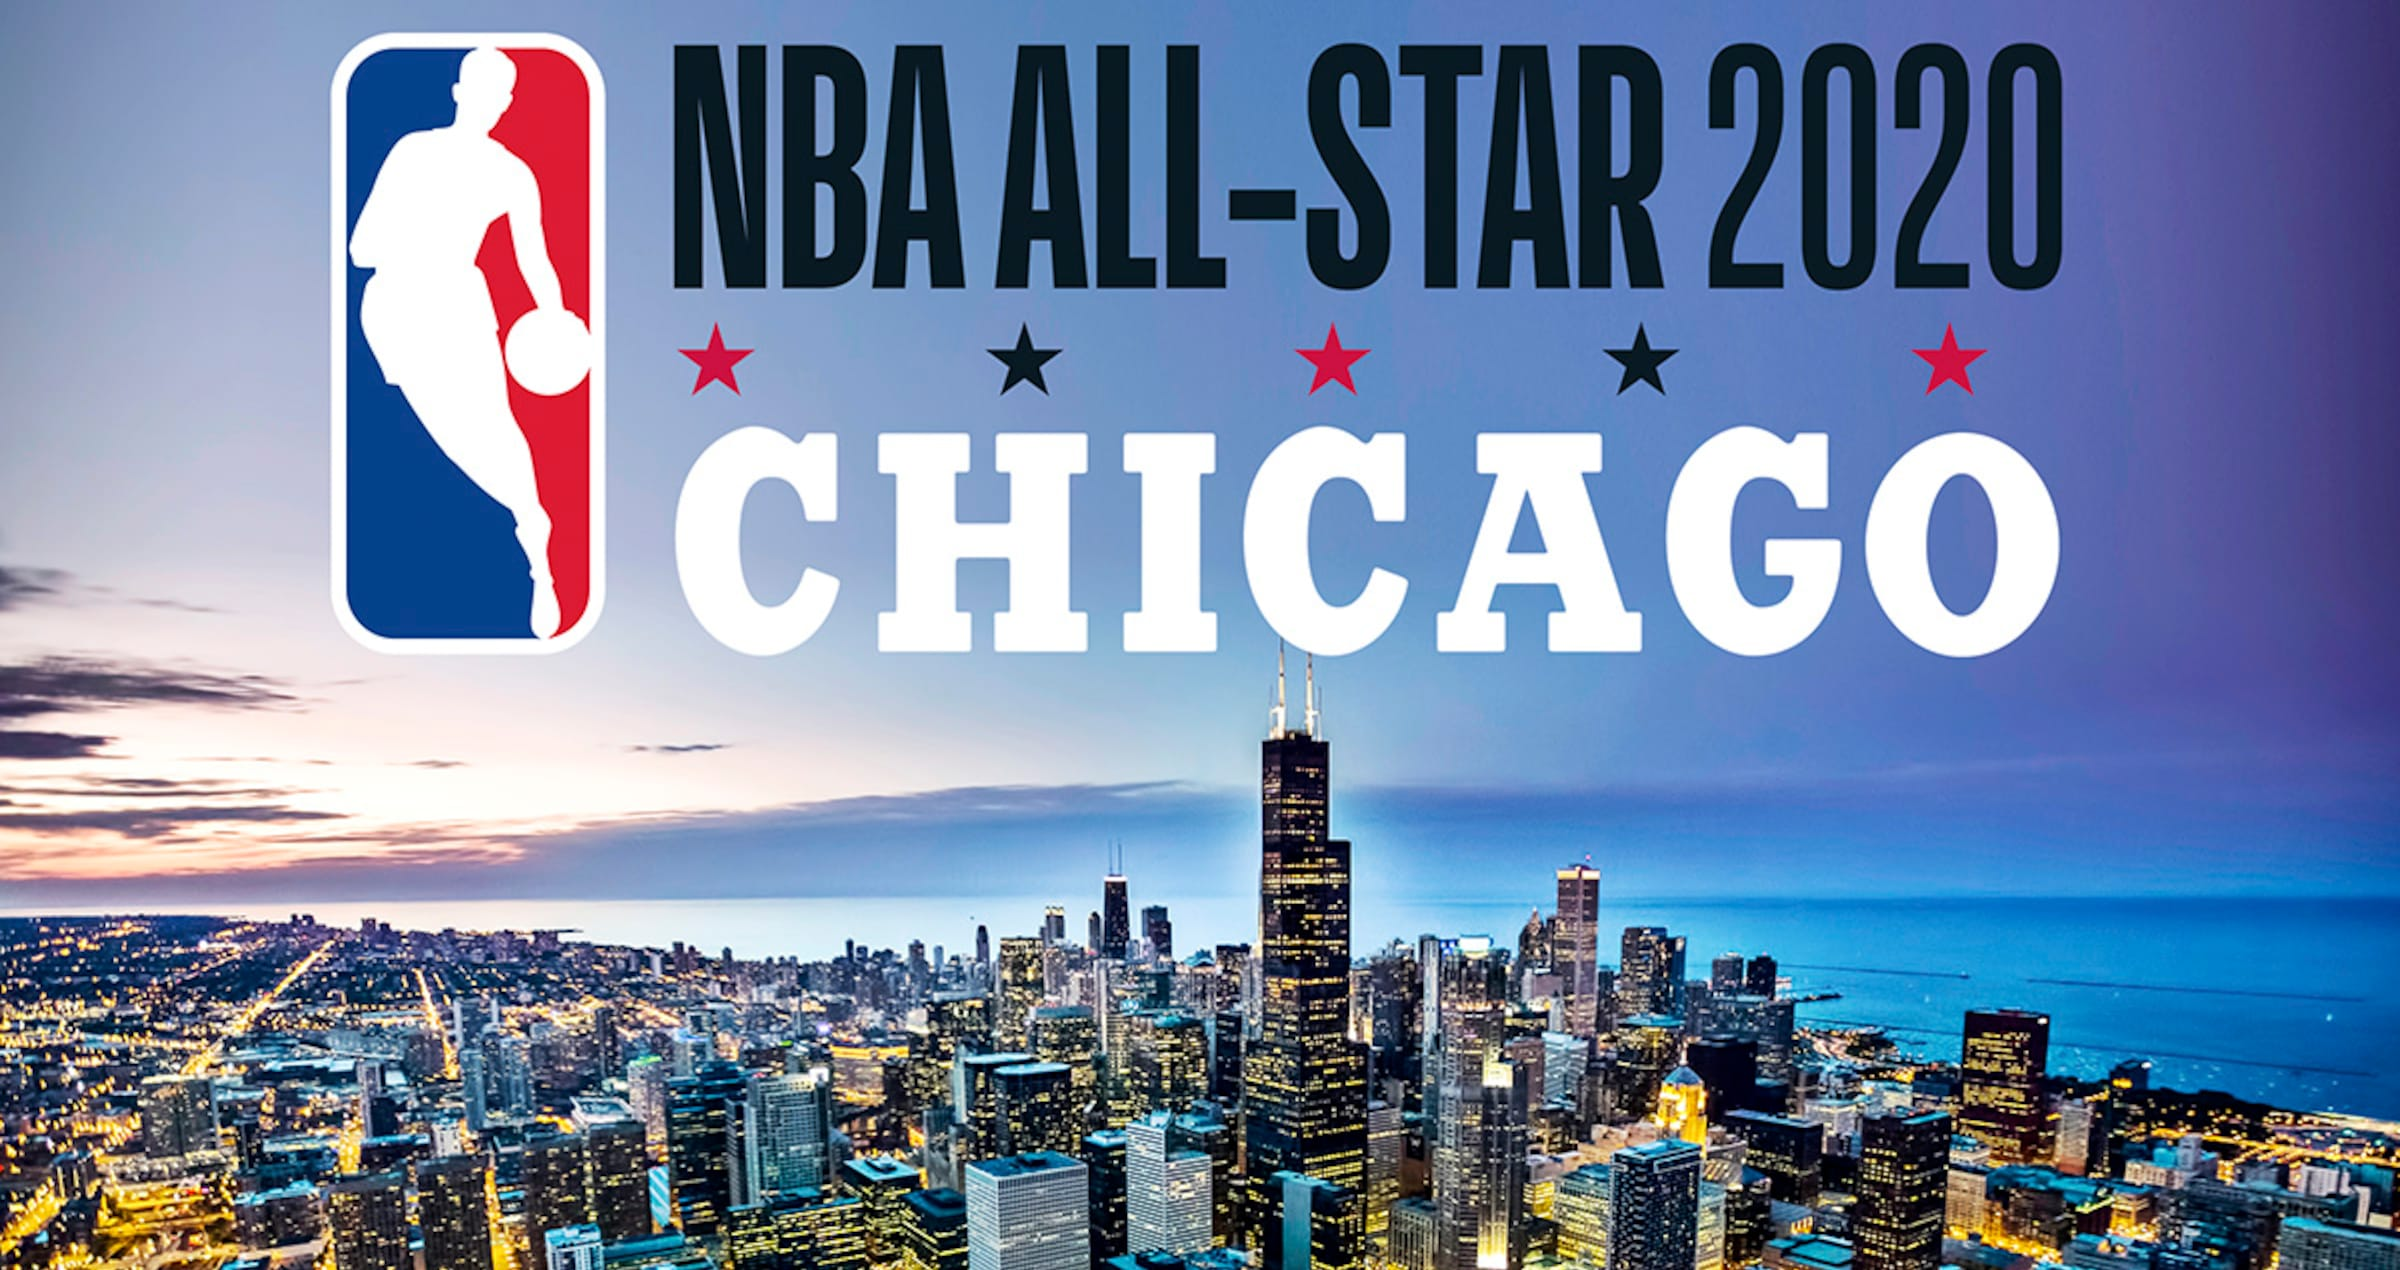 Limo Service To NBA All Star Weekend In Chicago